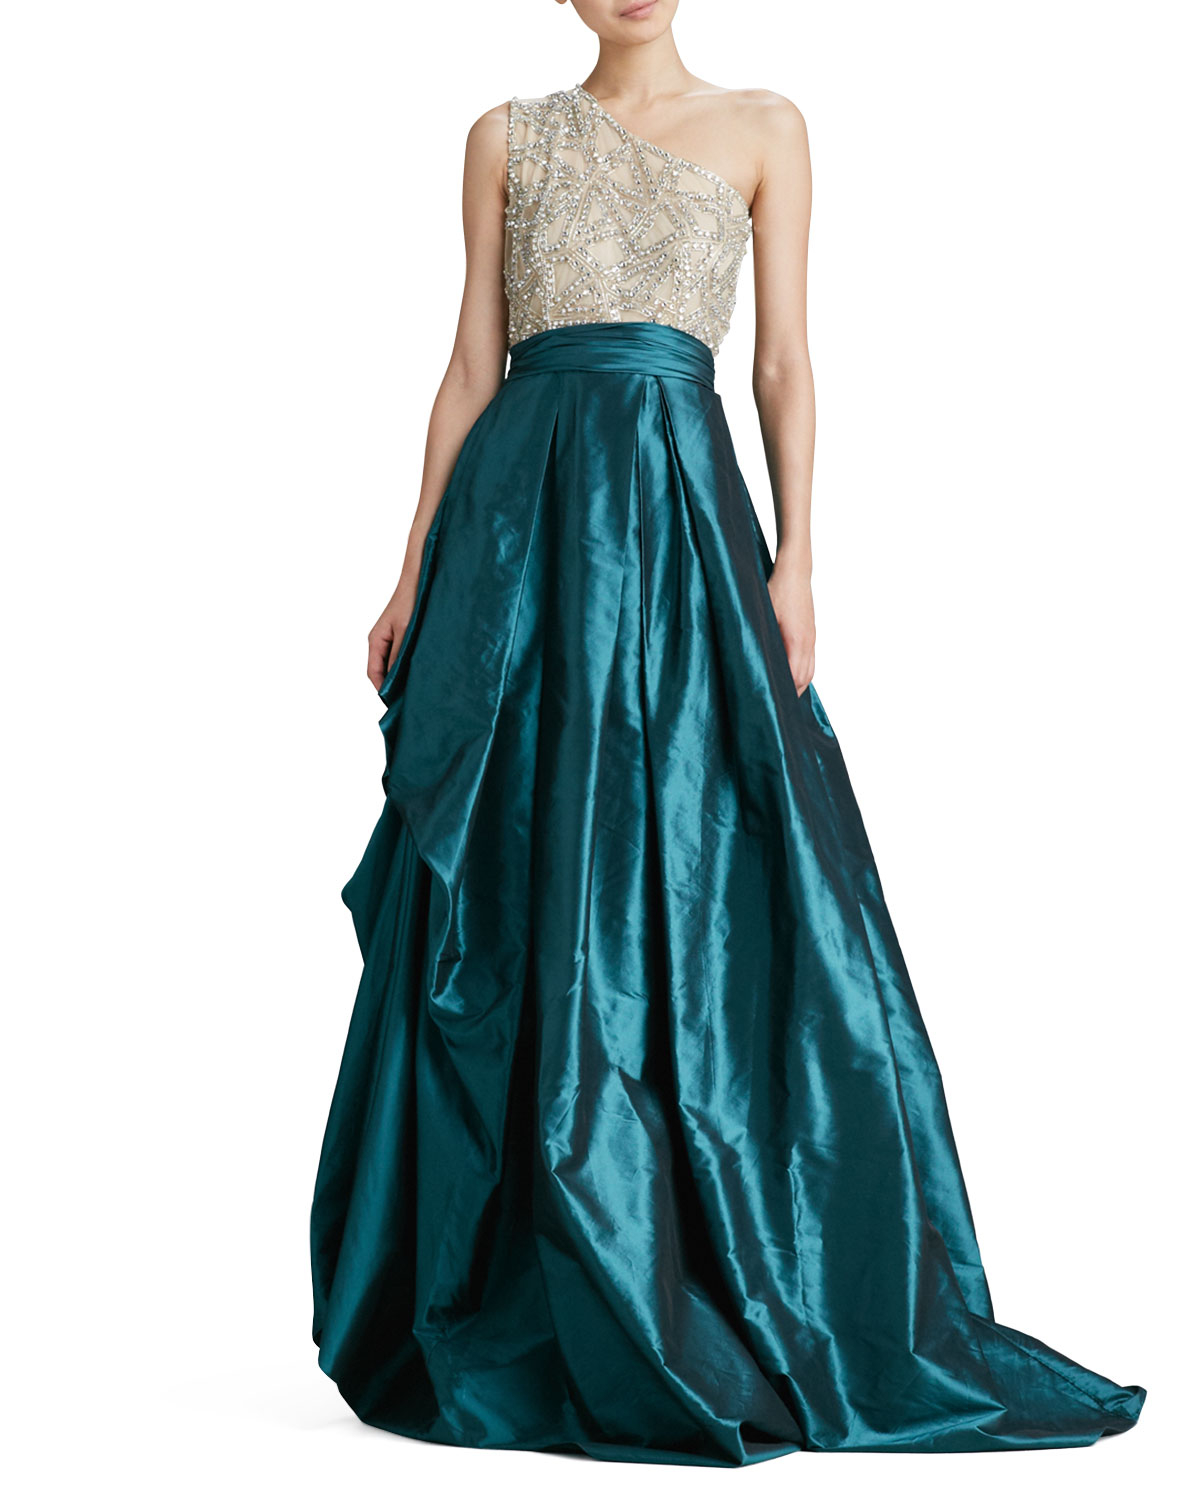 Lyst - Naeem Khan One-shoulder Beaded-bodice Ball Gown in Blue